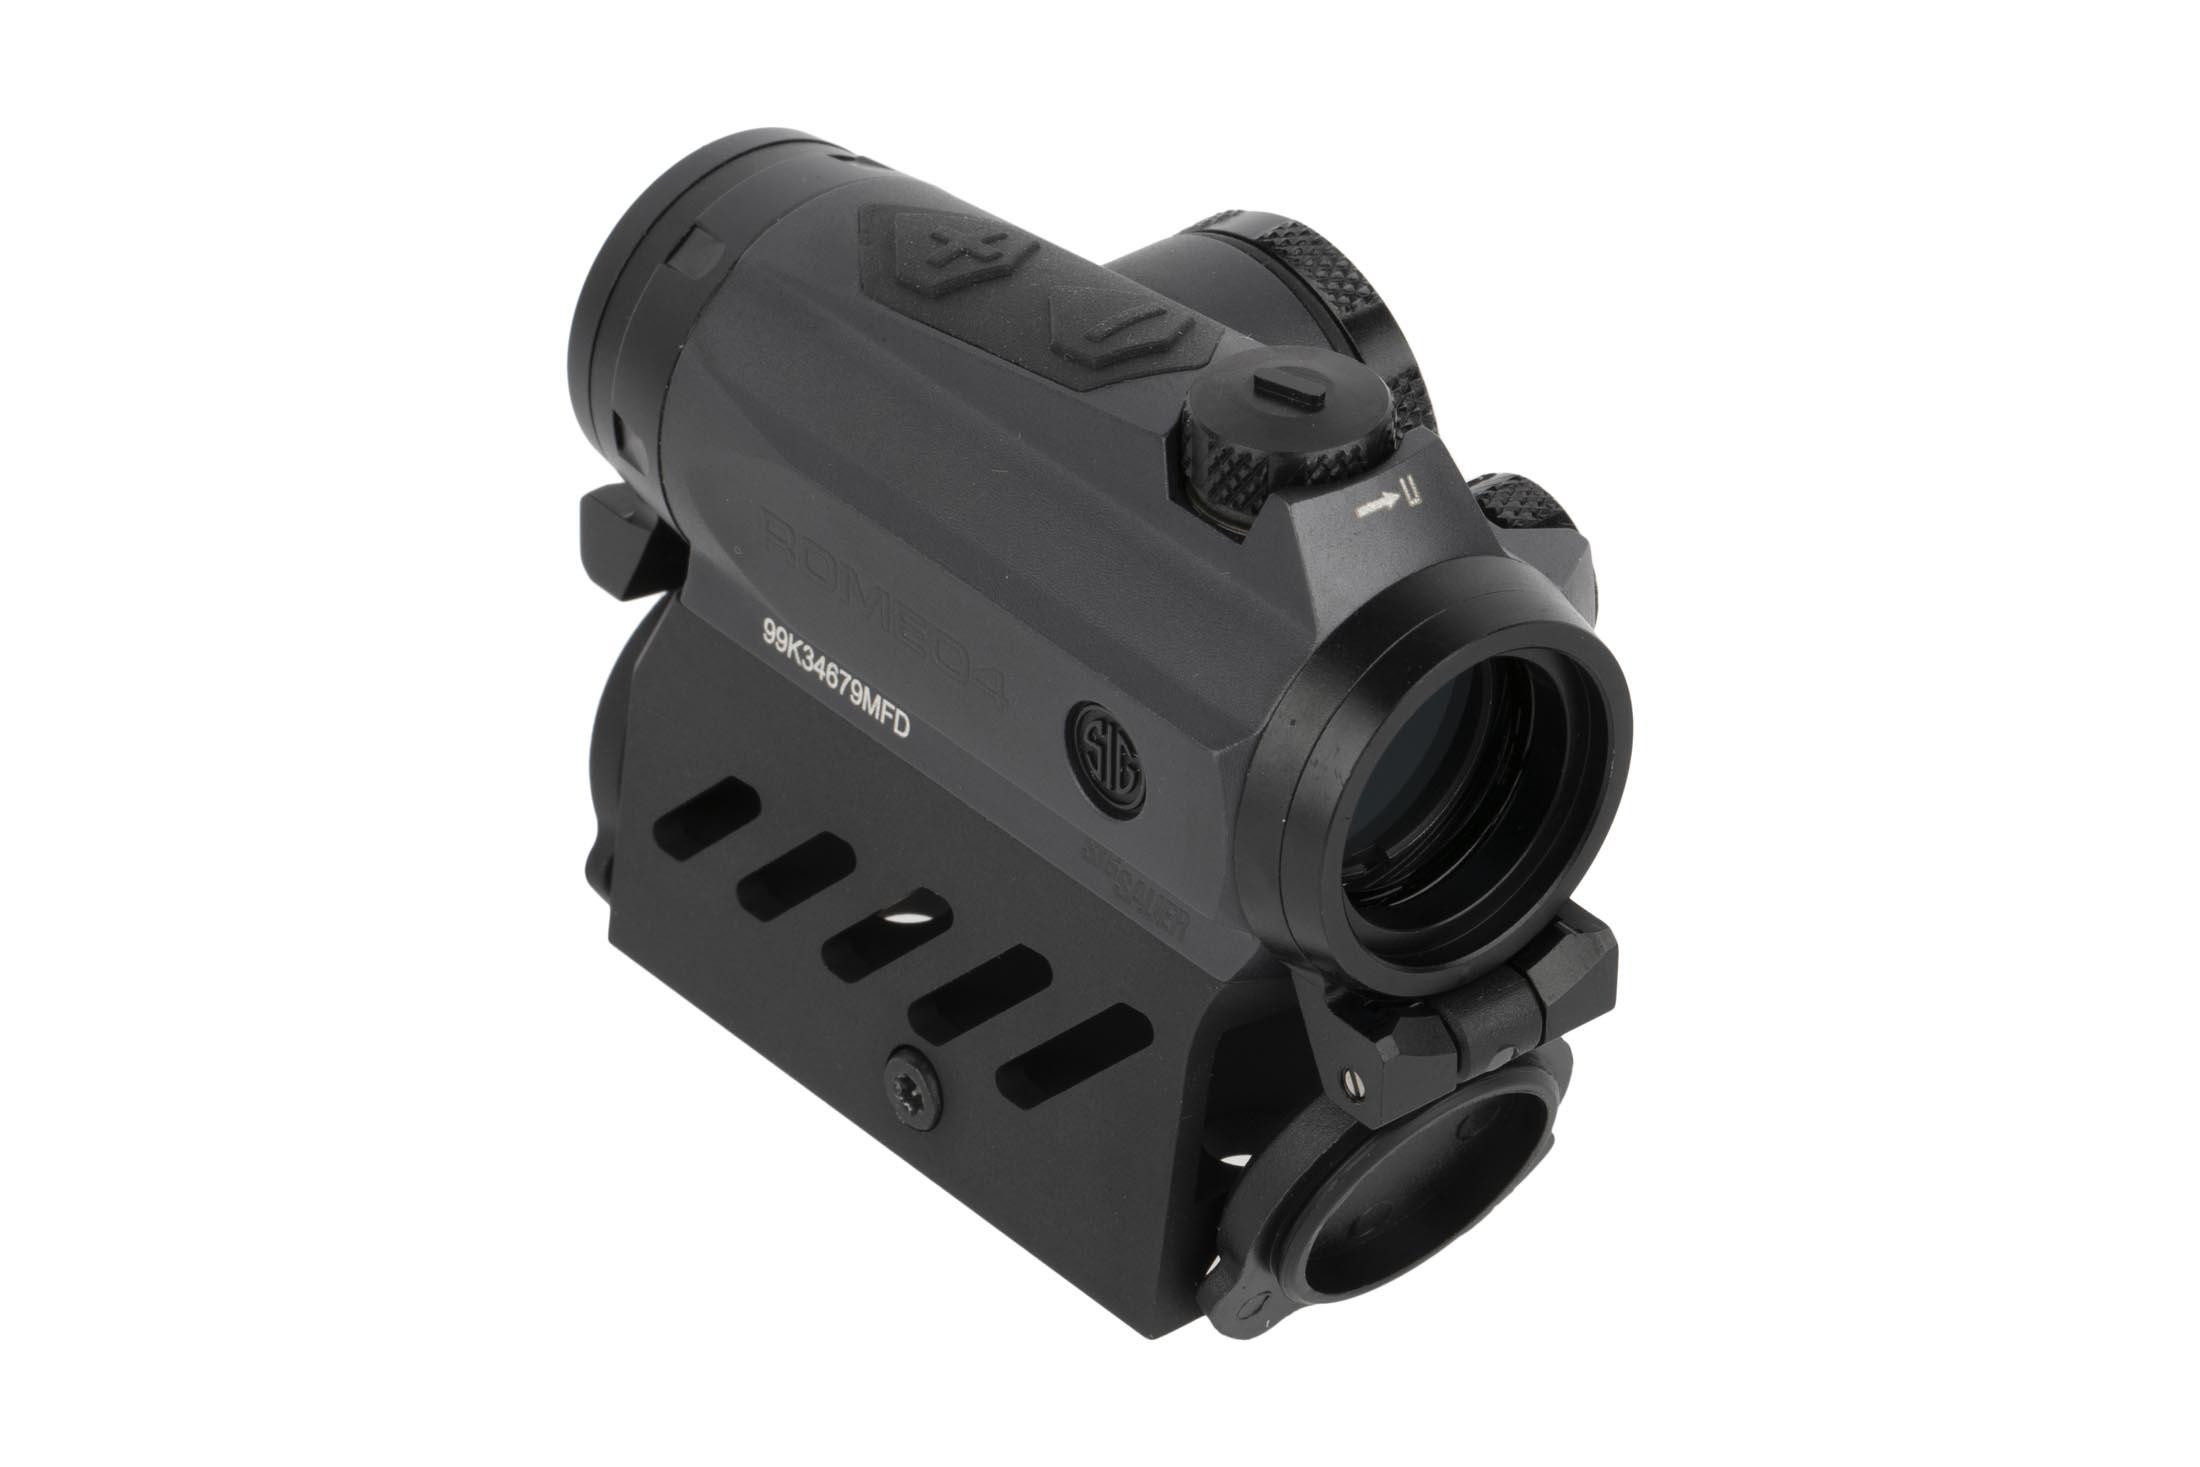 SIG Sauer 2 MOA Romeo 4M red dot sight is powered by standard a single CR2032 battery and has flip caps